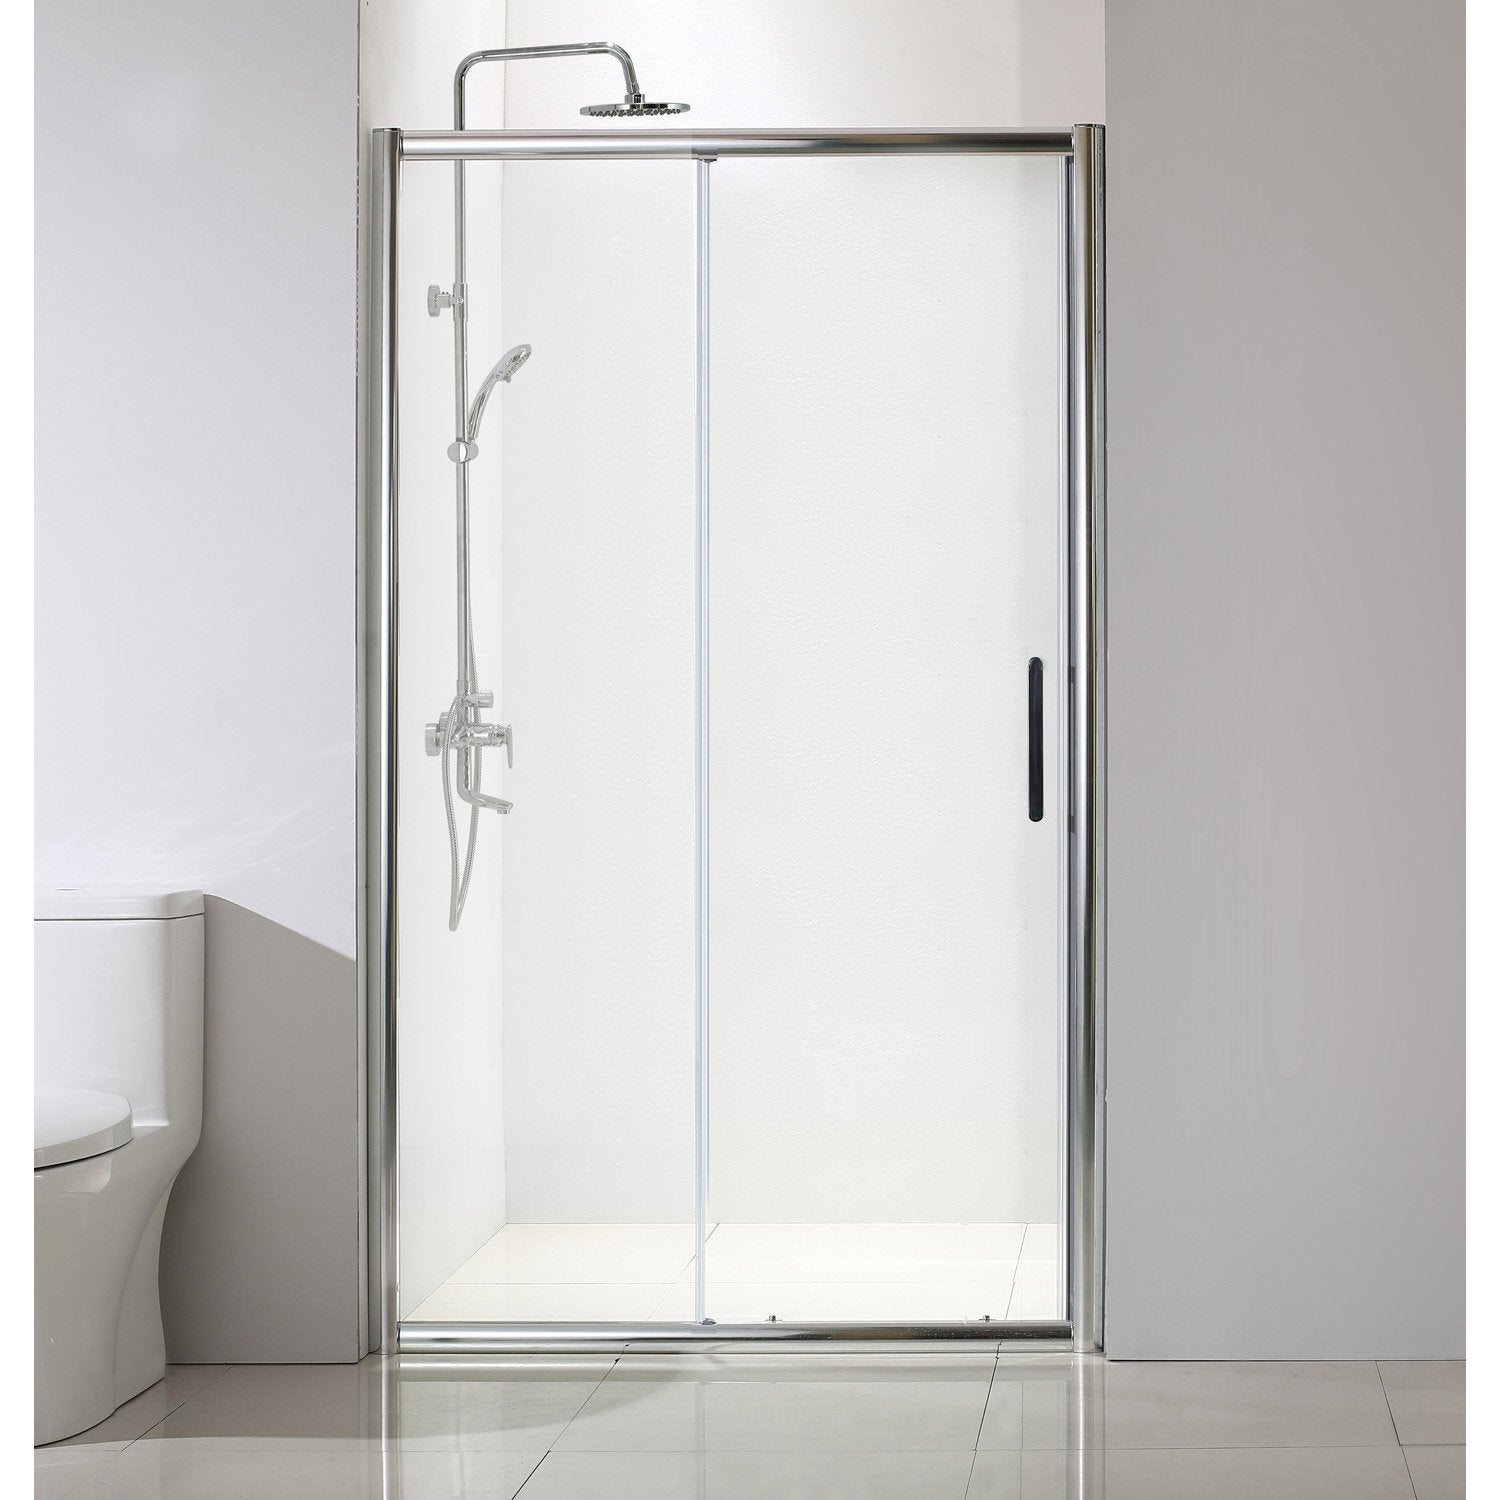 porte de douche coulissante 120 cm transparent quad. Black Bedroom Furniture Sets. Home Design Ideas